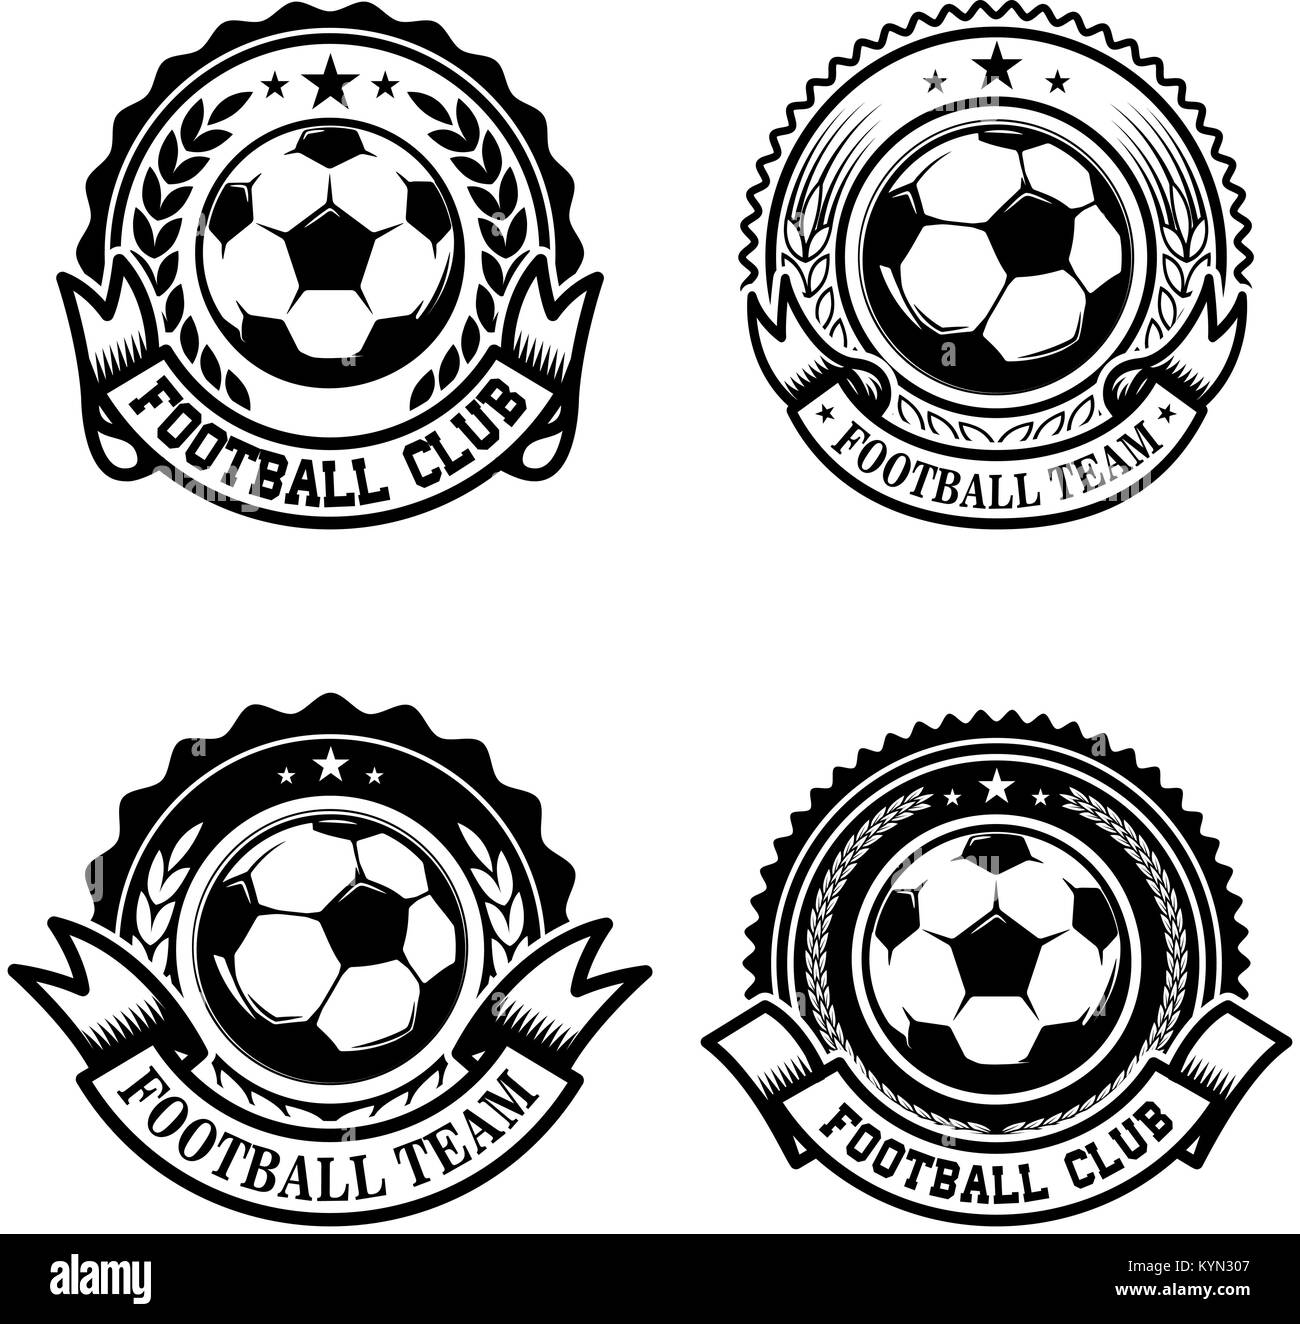 Set of soccer football emblems design element for logo label set of soccer football emblems design element for logo label emblem sign vector illustration biocorpaavc Choice Image